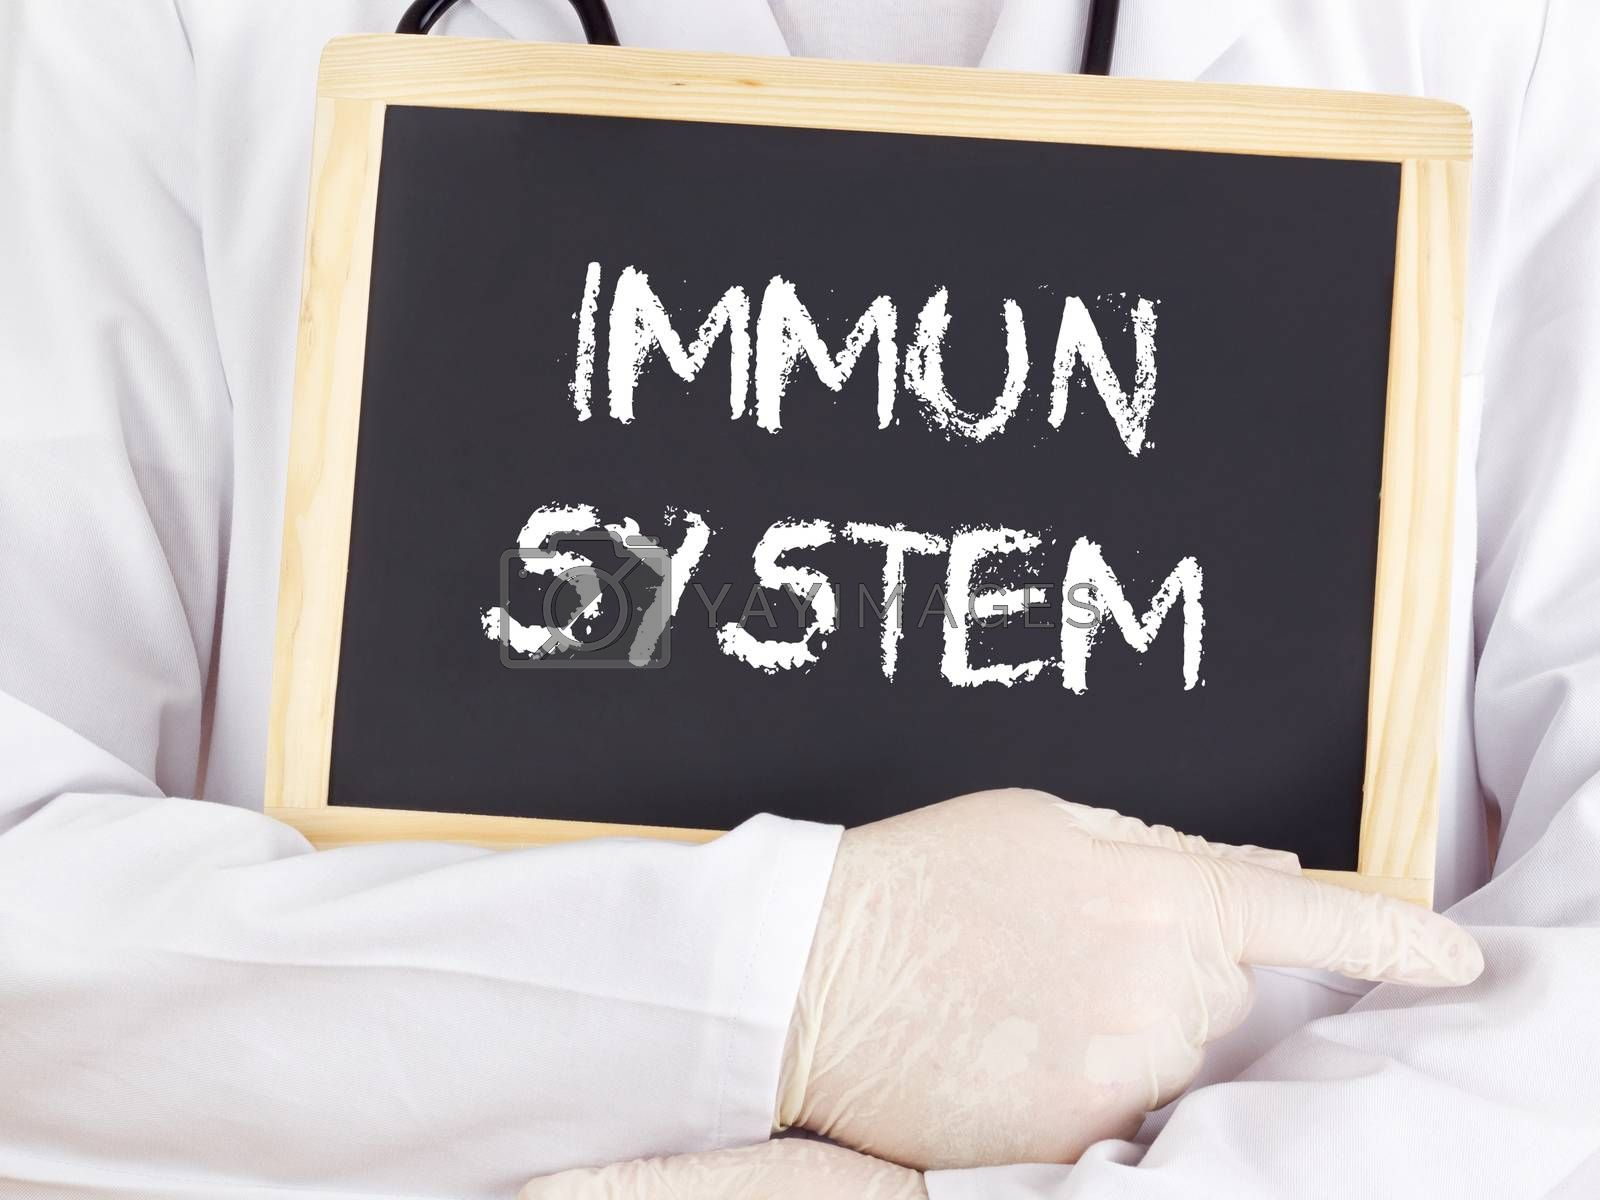 Doctor shows information: immune system in german